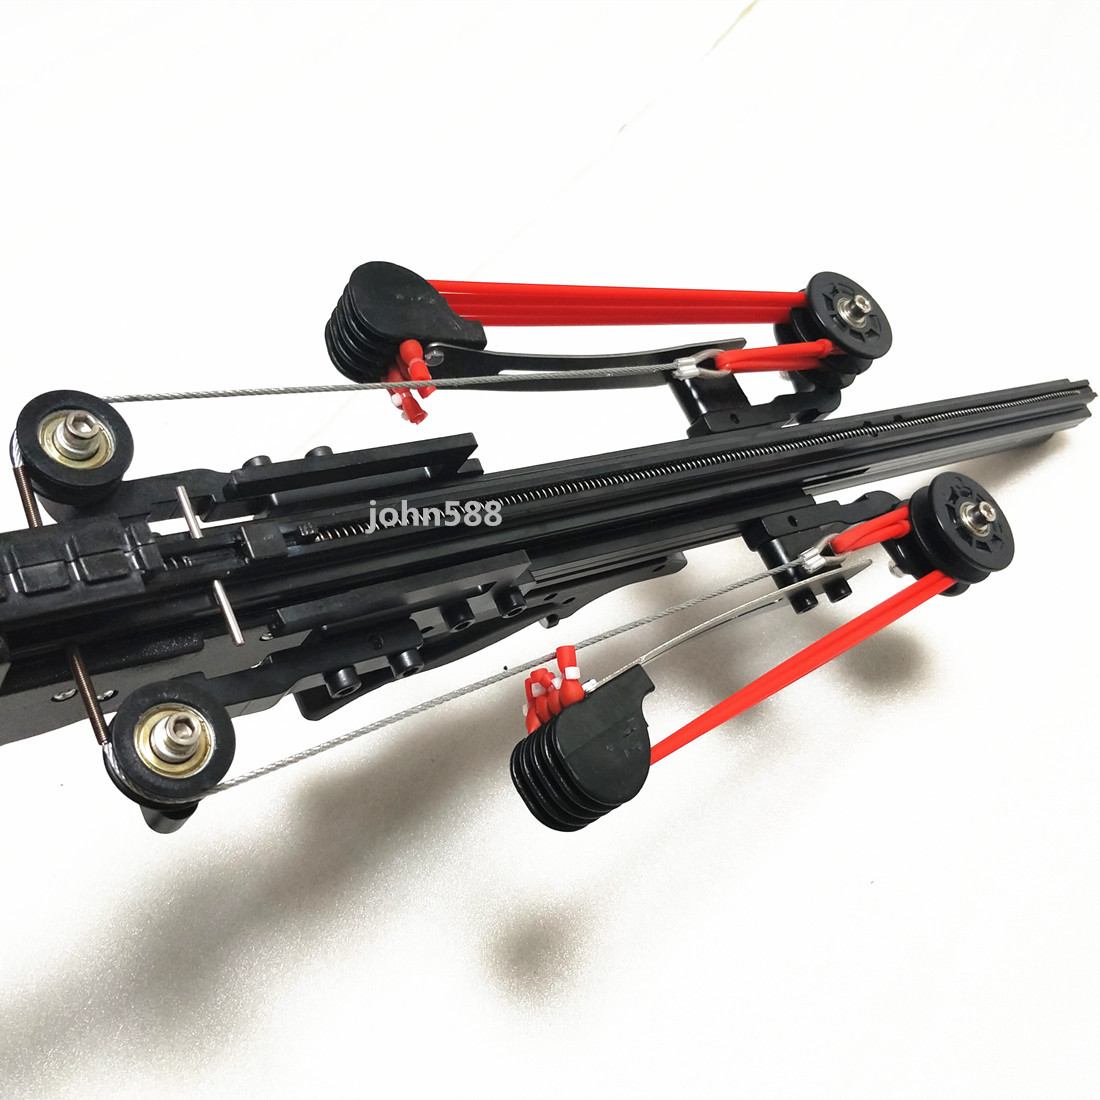 20 General Types of Neptune Slingshot Plastic Arrows for Outdoor Shooting